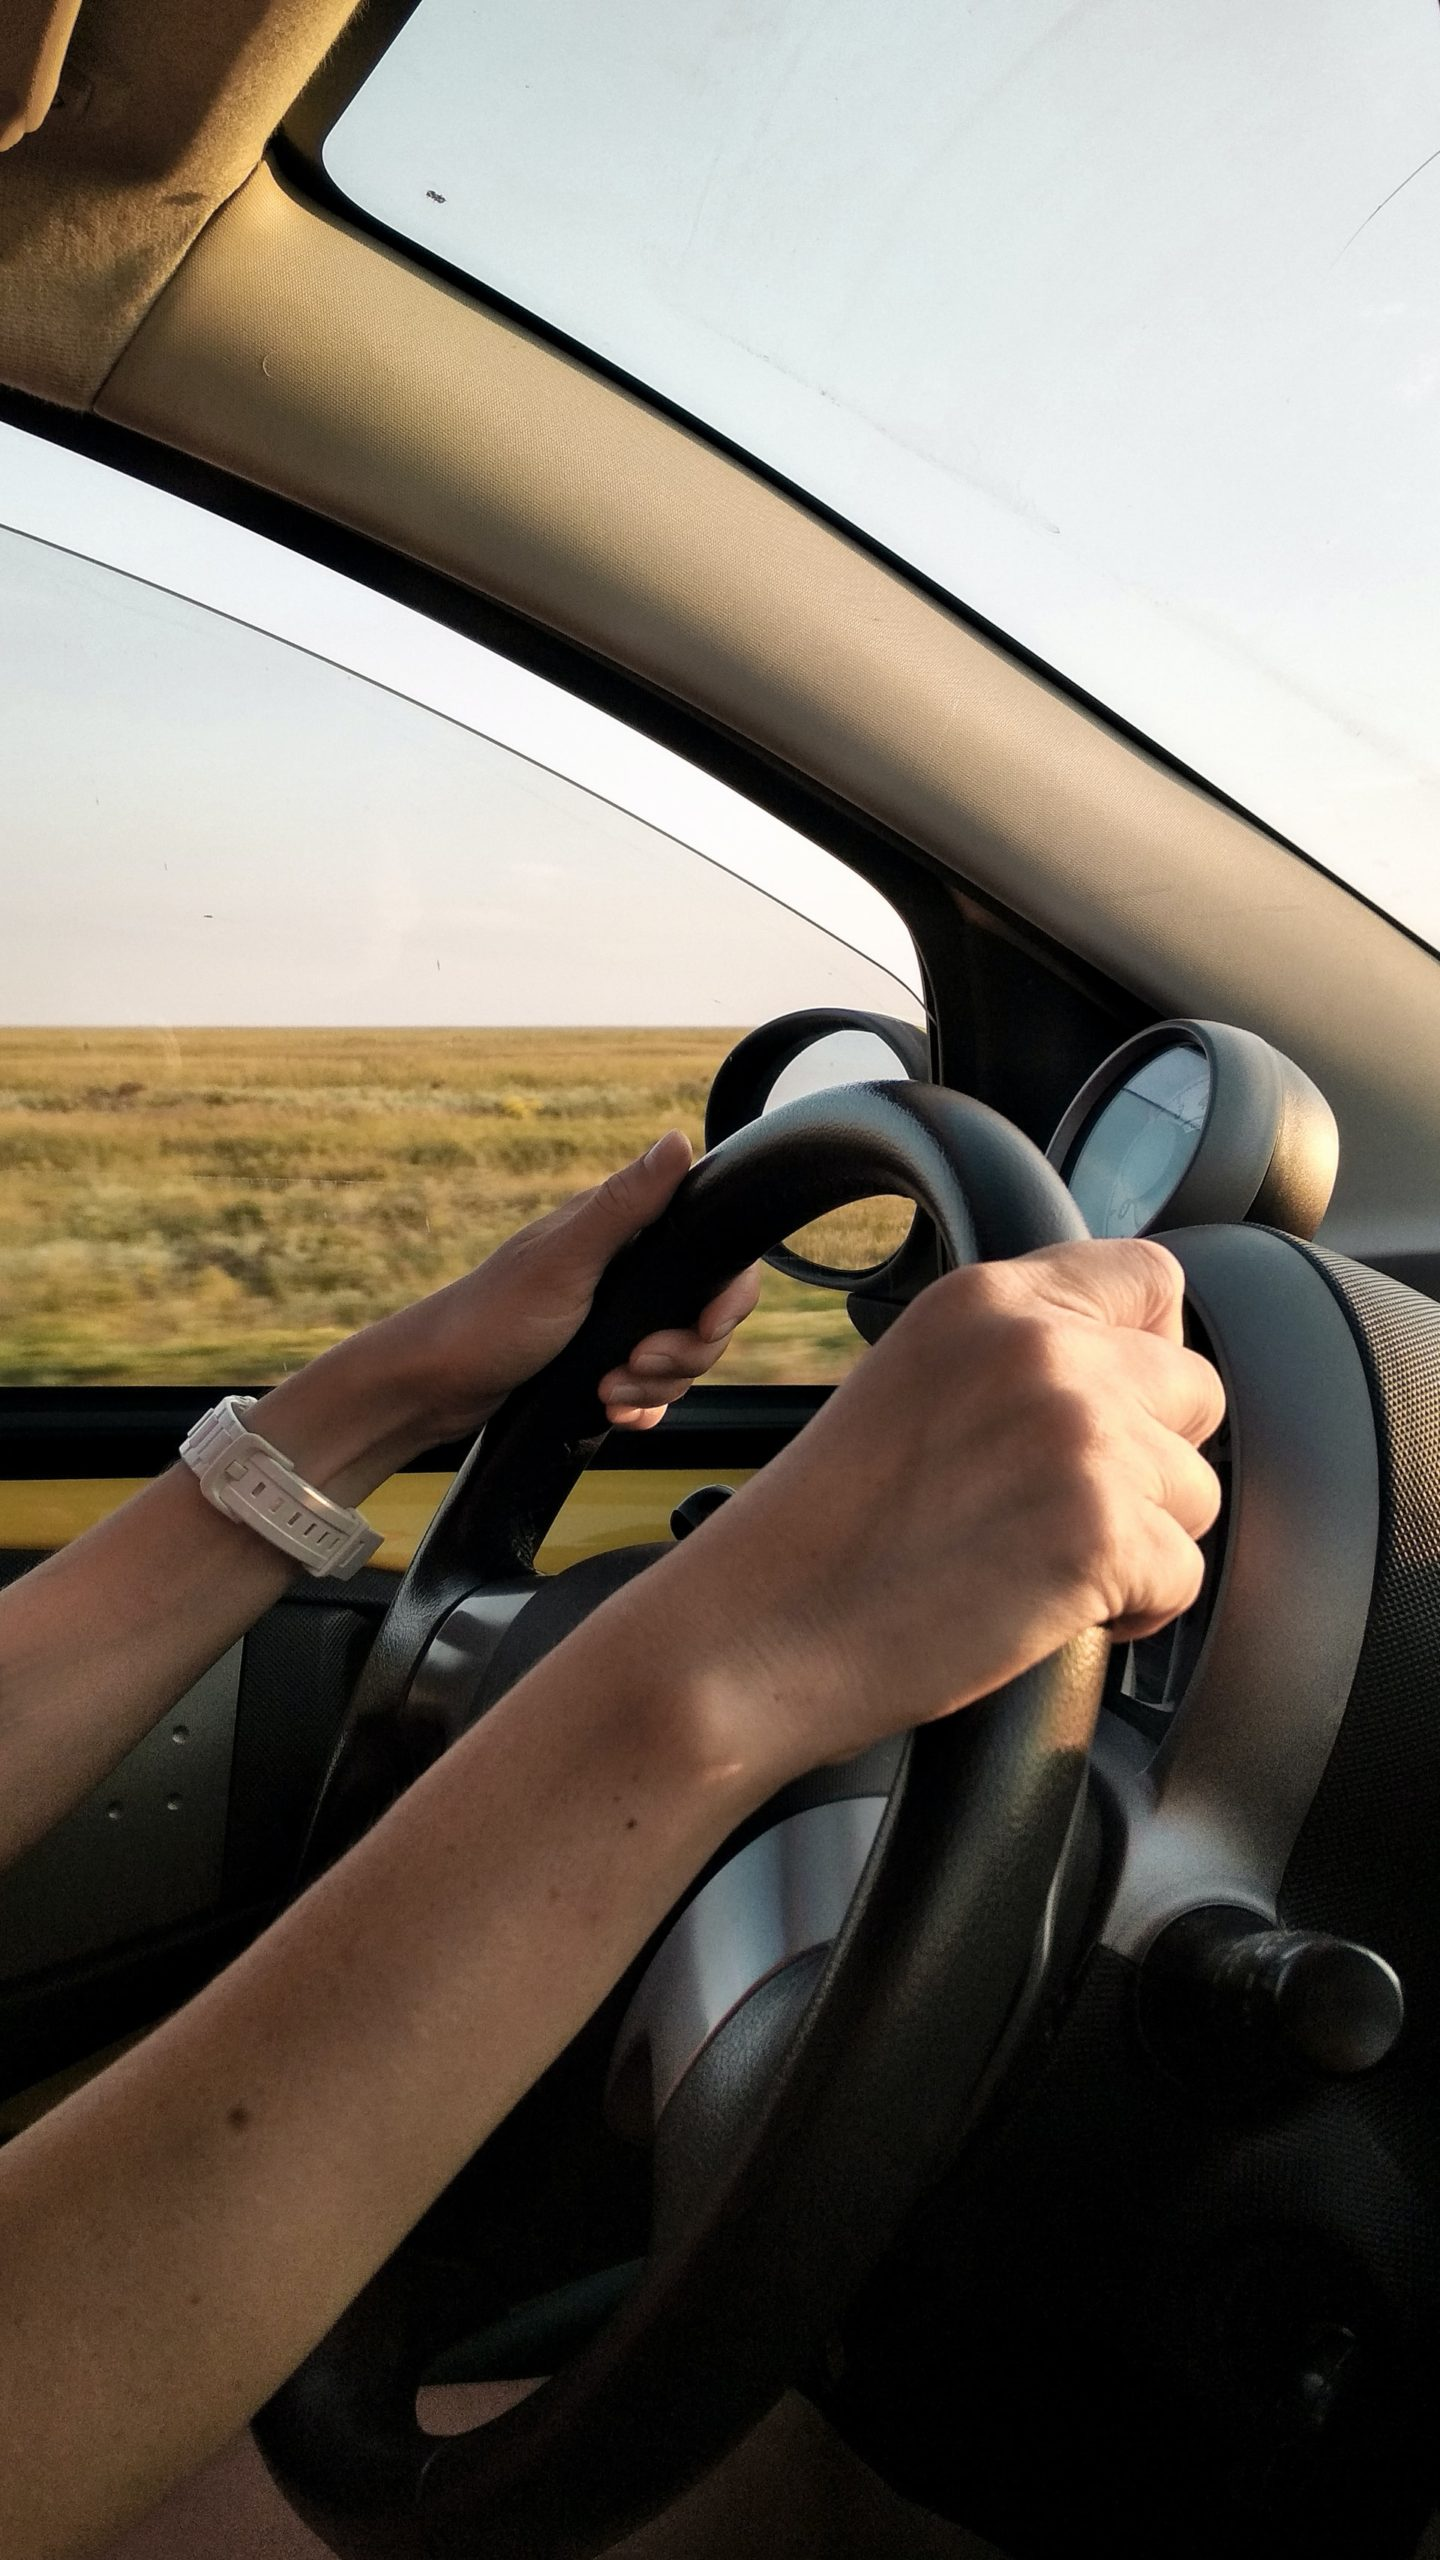 Mistakes Learning Drive Article Image